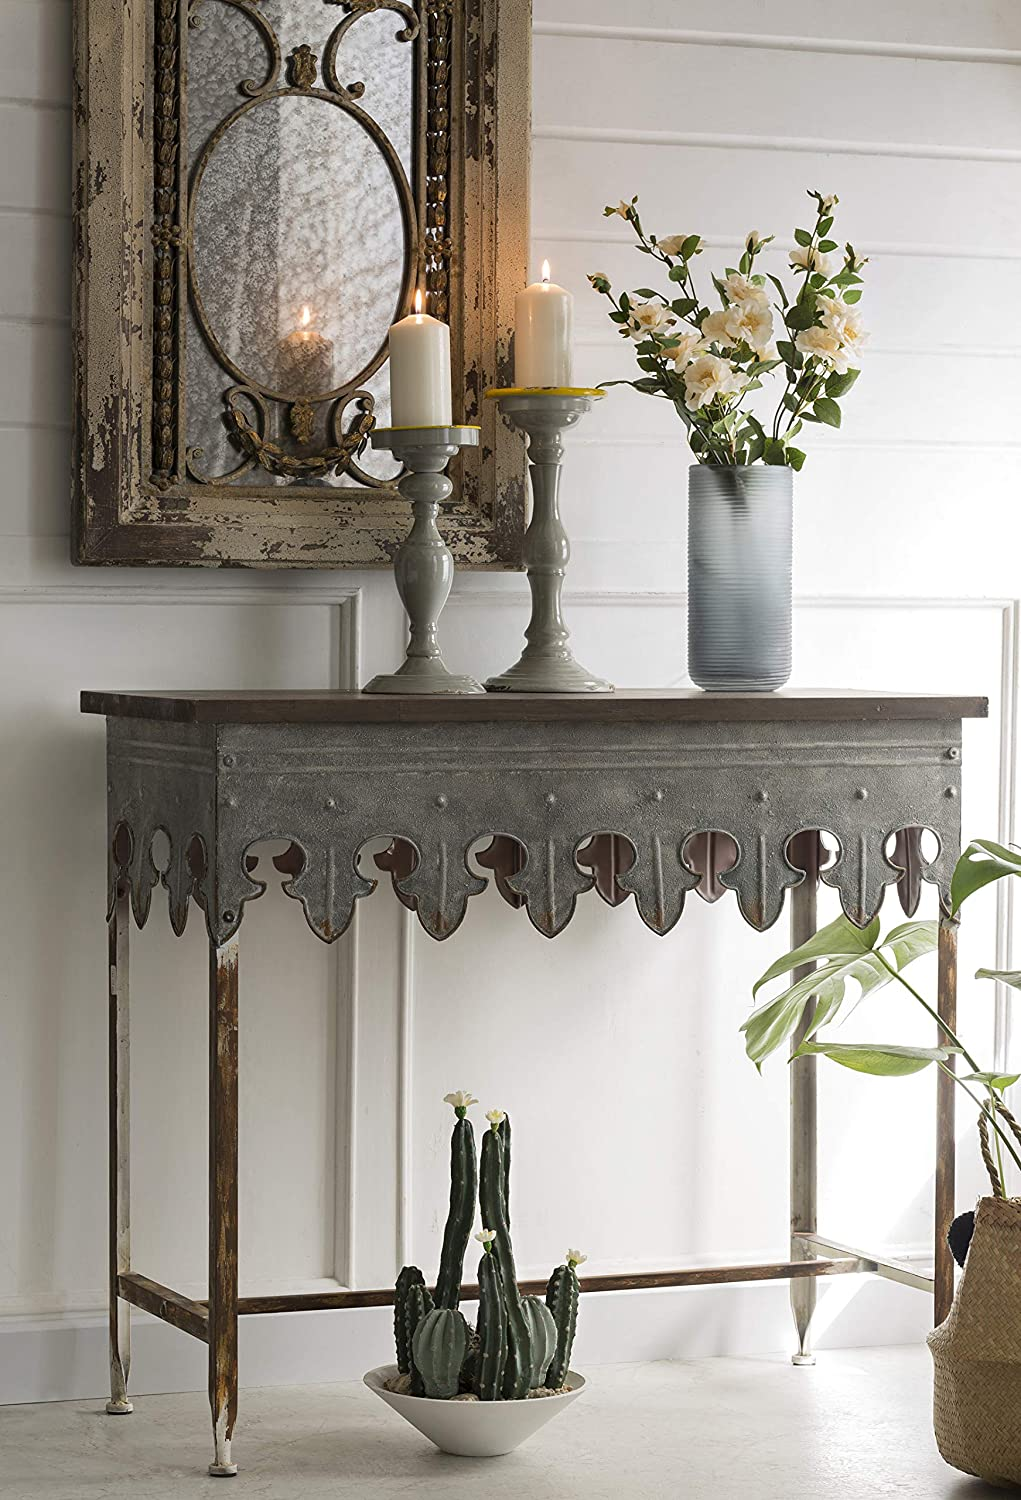 Rustic distressed zinc farmhouse style table with wood top. Come feast on photos of beautiful interiors to inspire As Well As Classic Interior Design Inspiration.